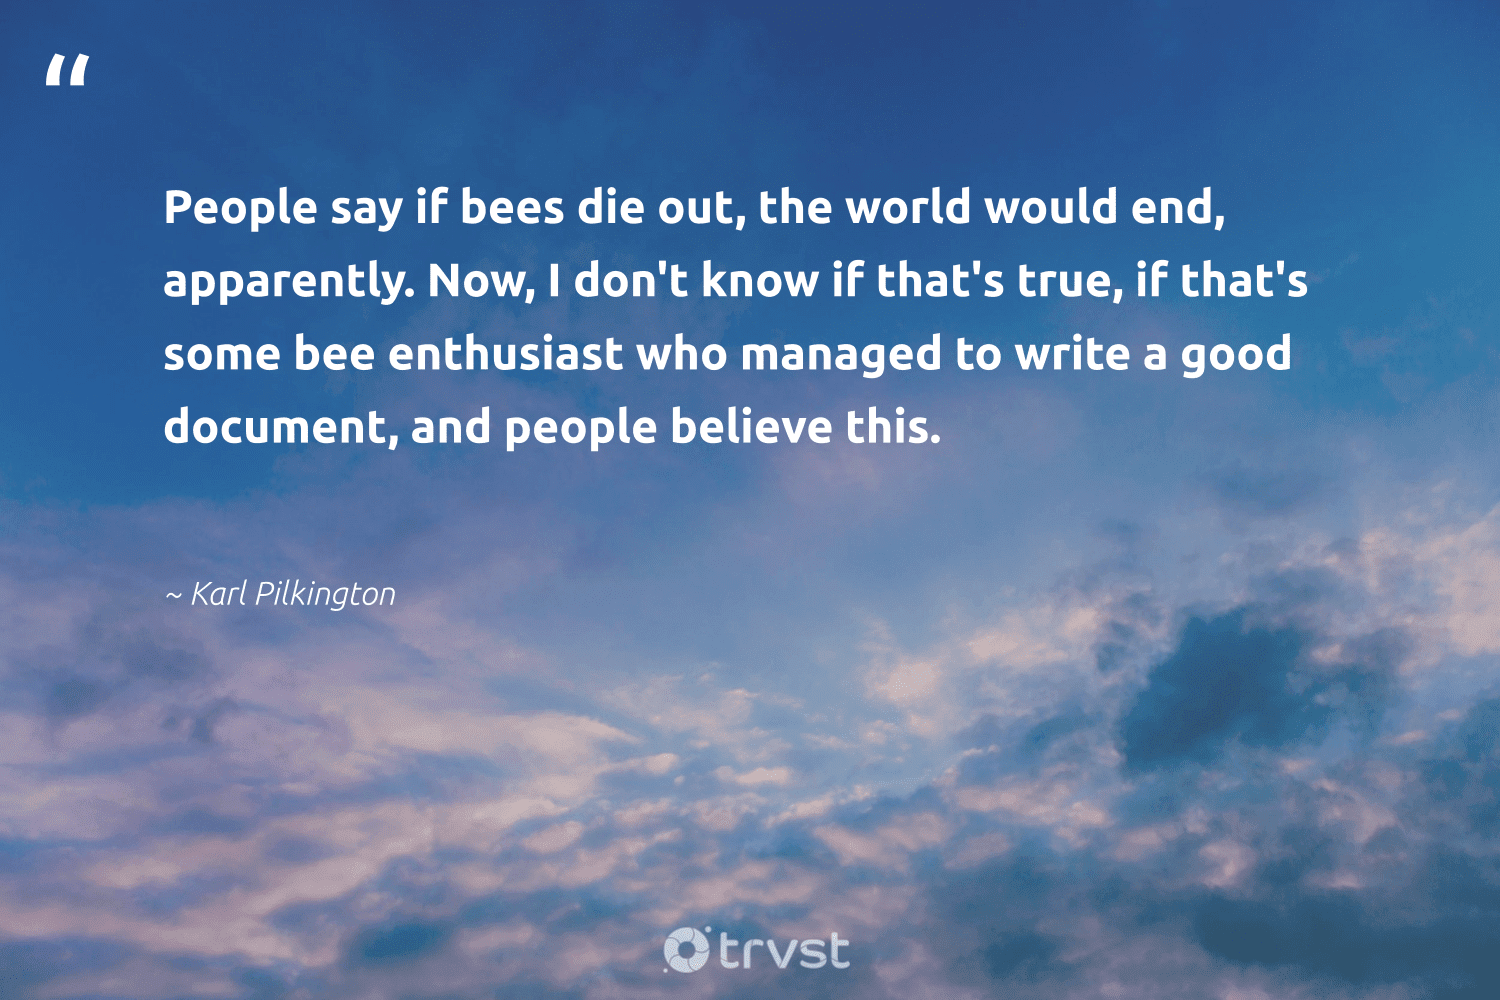 """""""People say if bees die out, the world would end, apparently. Now, I don't know if that's true, if that's some bee enthusiast who managed to write a good document, and people believe this.""""  - Karl Pilkington #trvst #quotes #bee #bees #honey #honeybee #apiary #forscience #beinspired #pollinators #beeswax #beekeeper"""